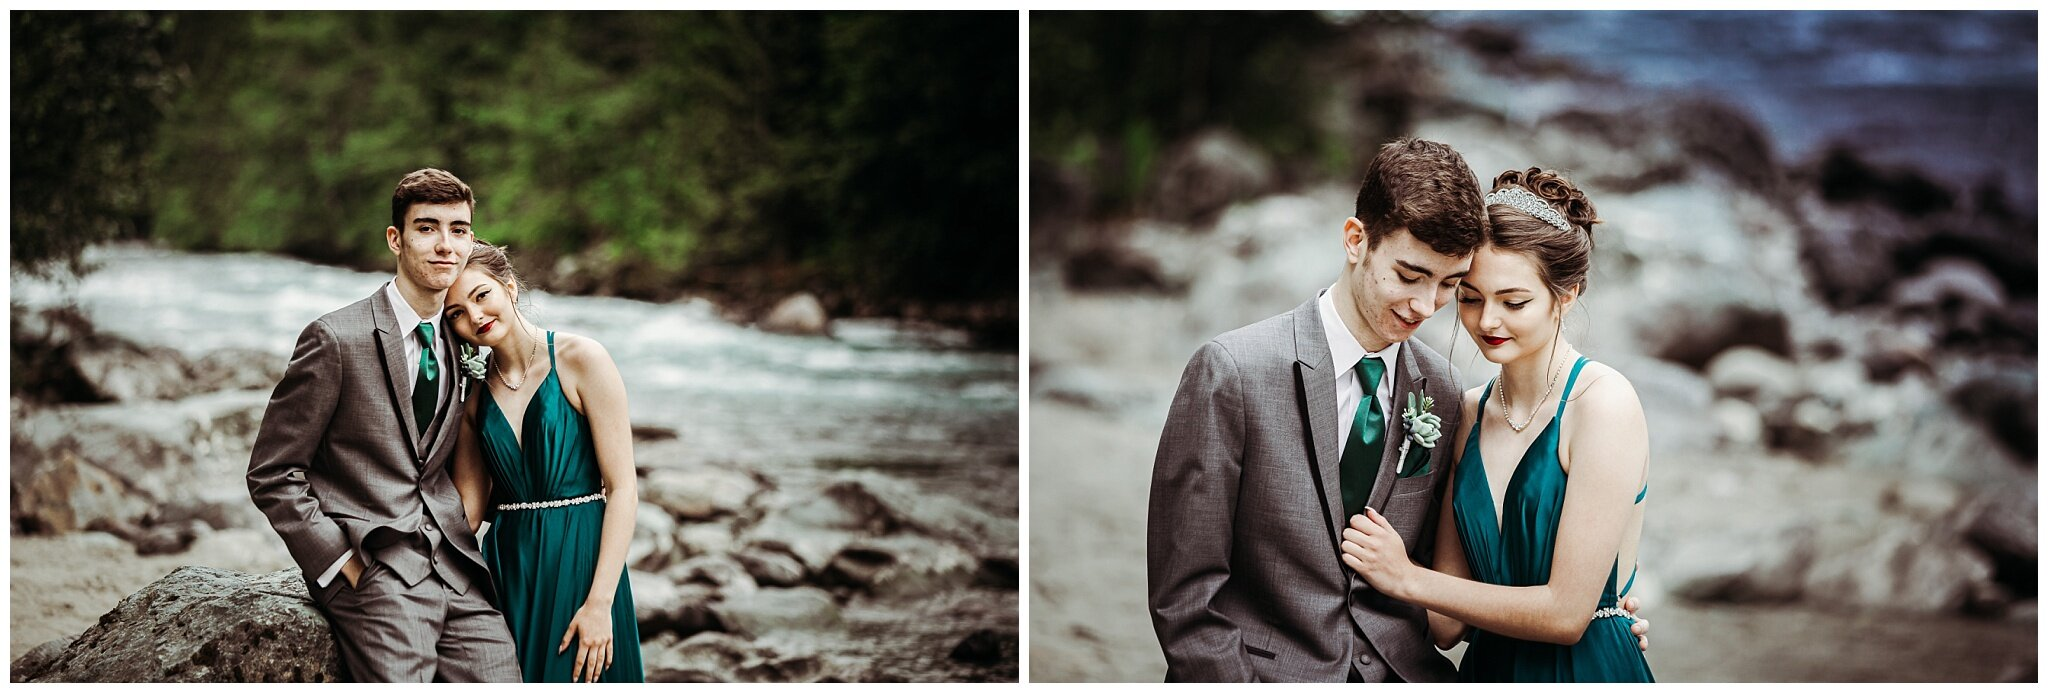 Chilliwack Prom Photographer 2019 Best of_0014.jpg